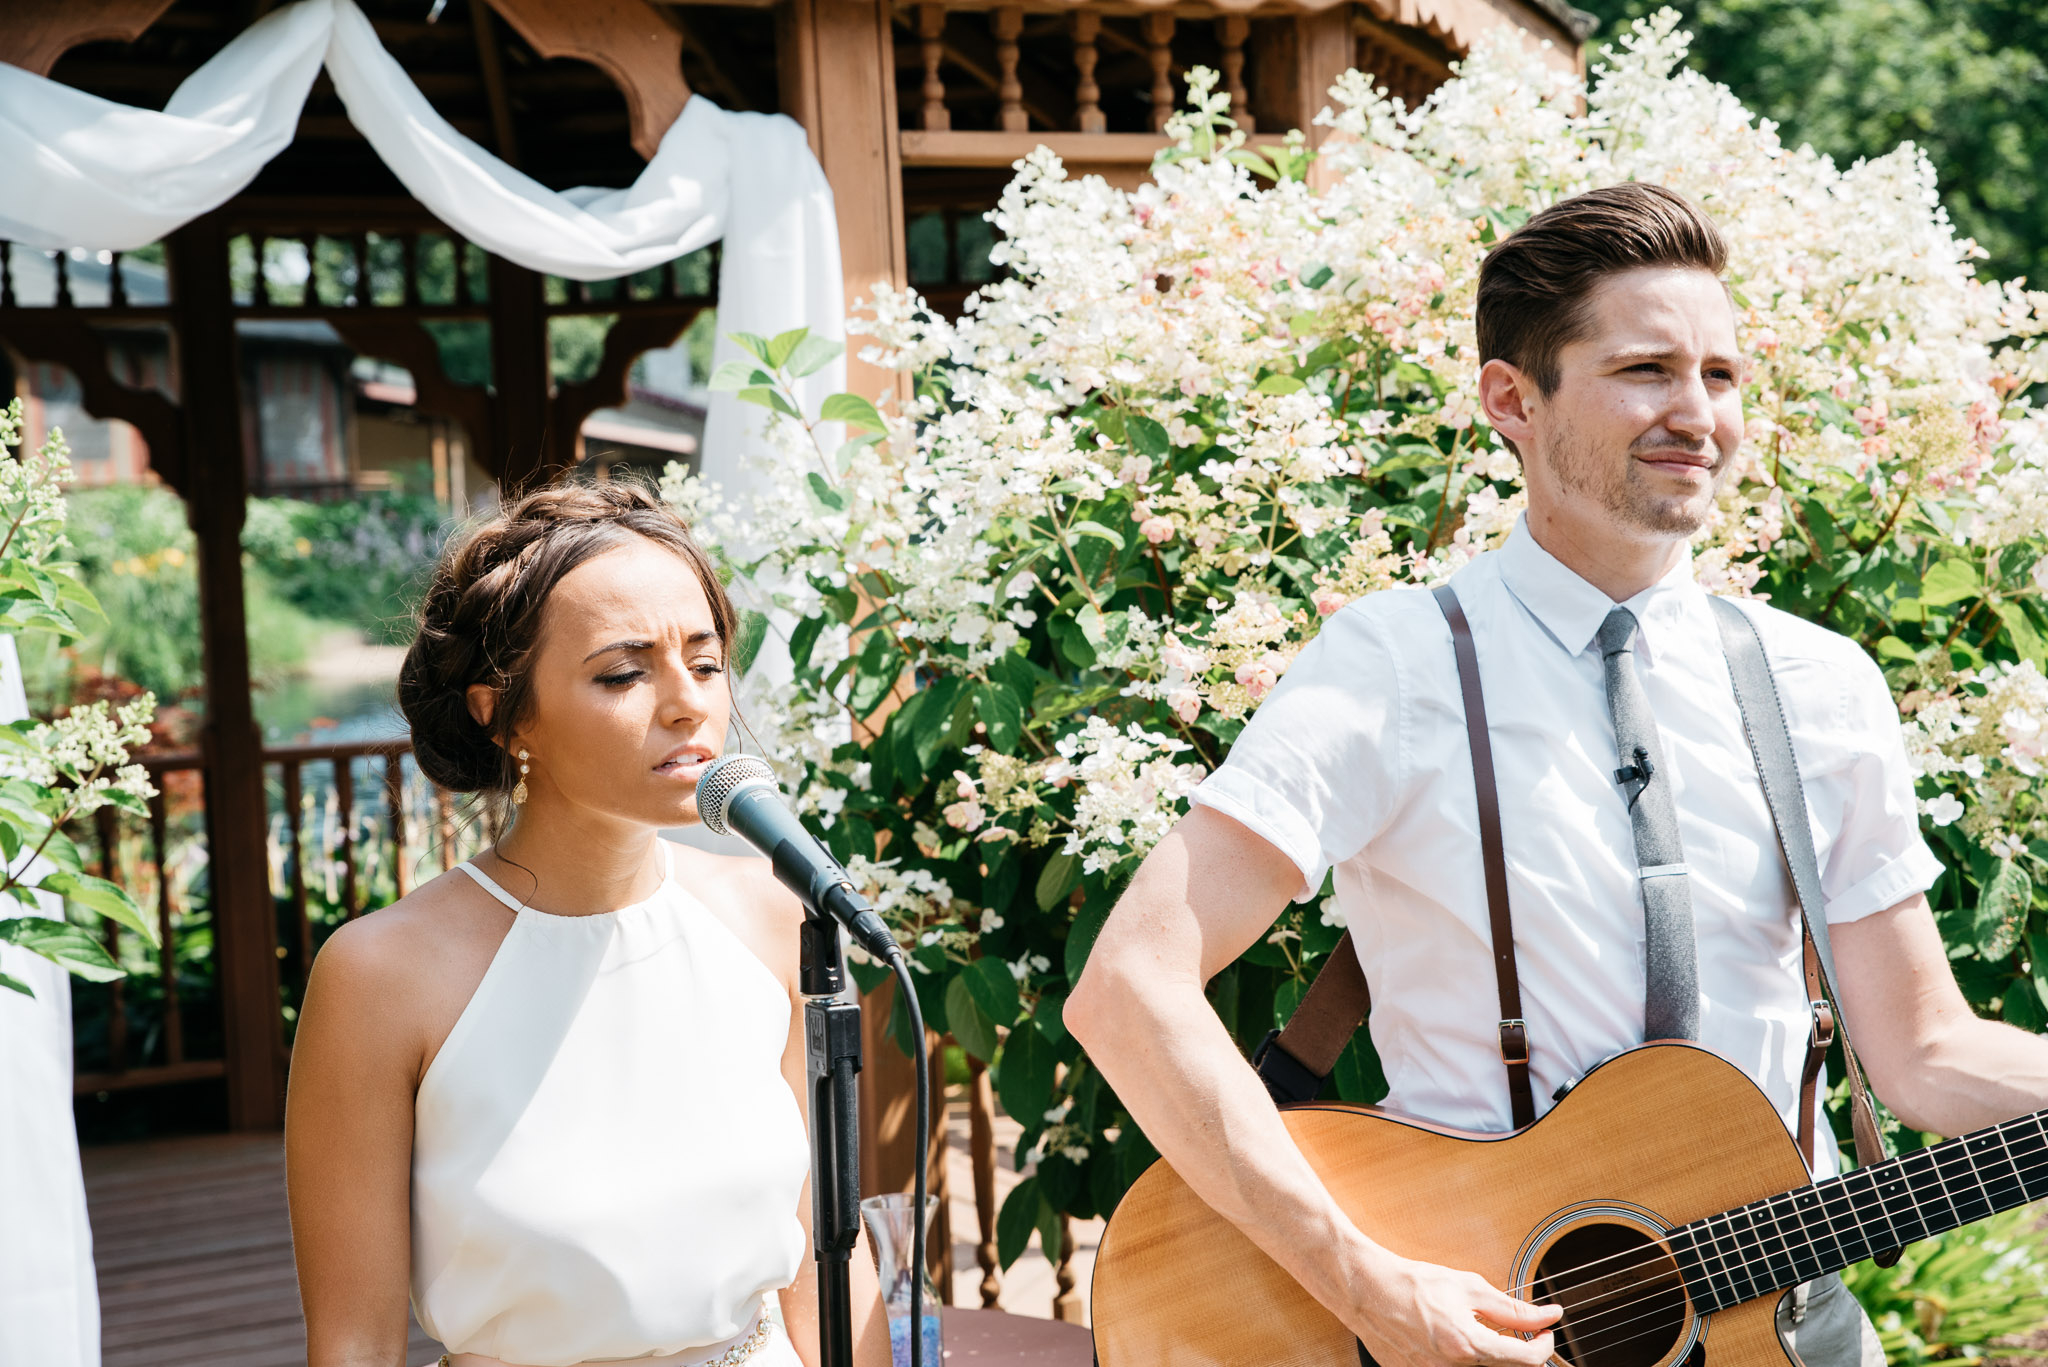 Acoustic Wedding Singers Foggy Mountain Stahlstown PA Wedding Photography-8299.jpg